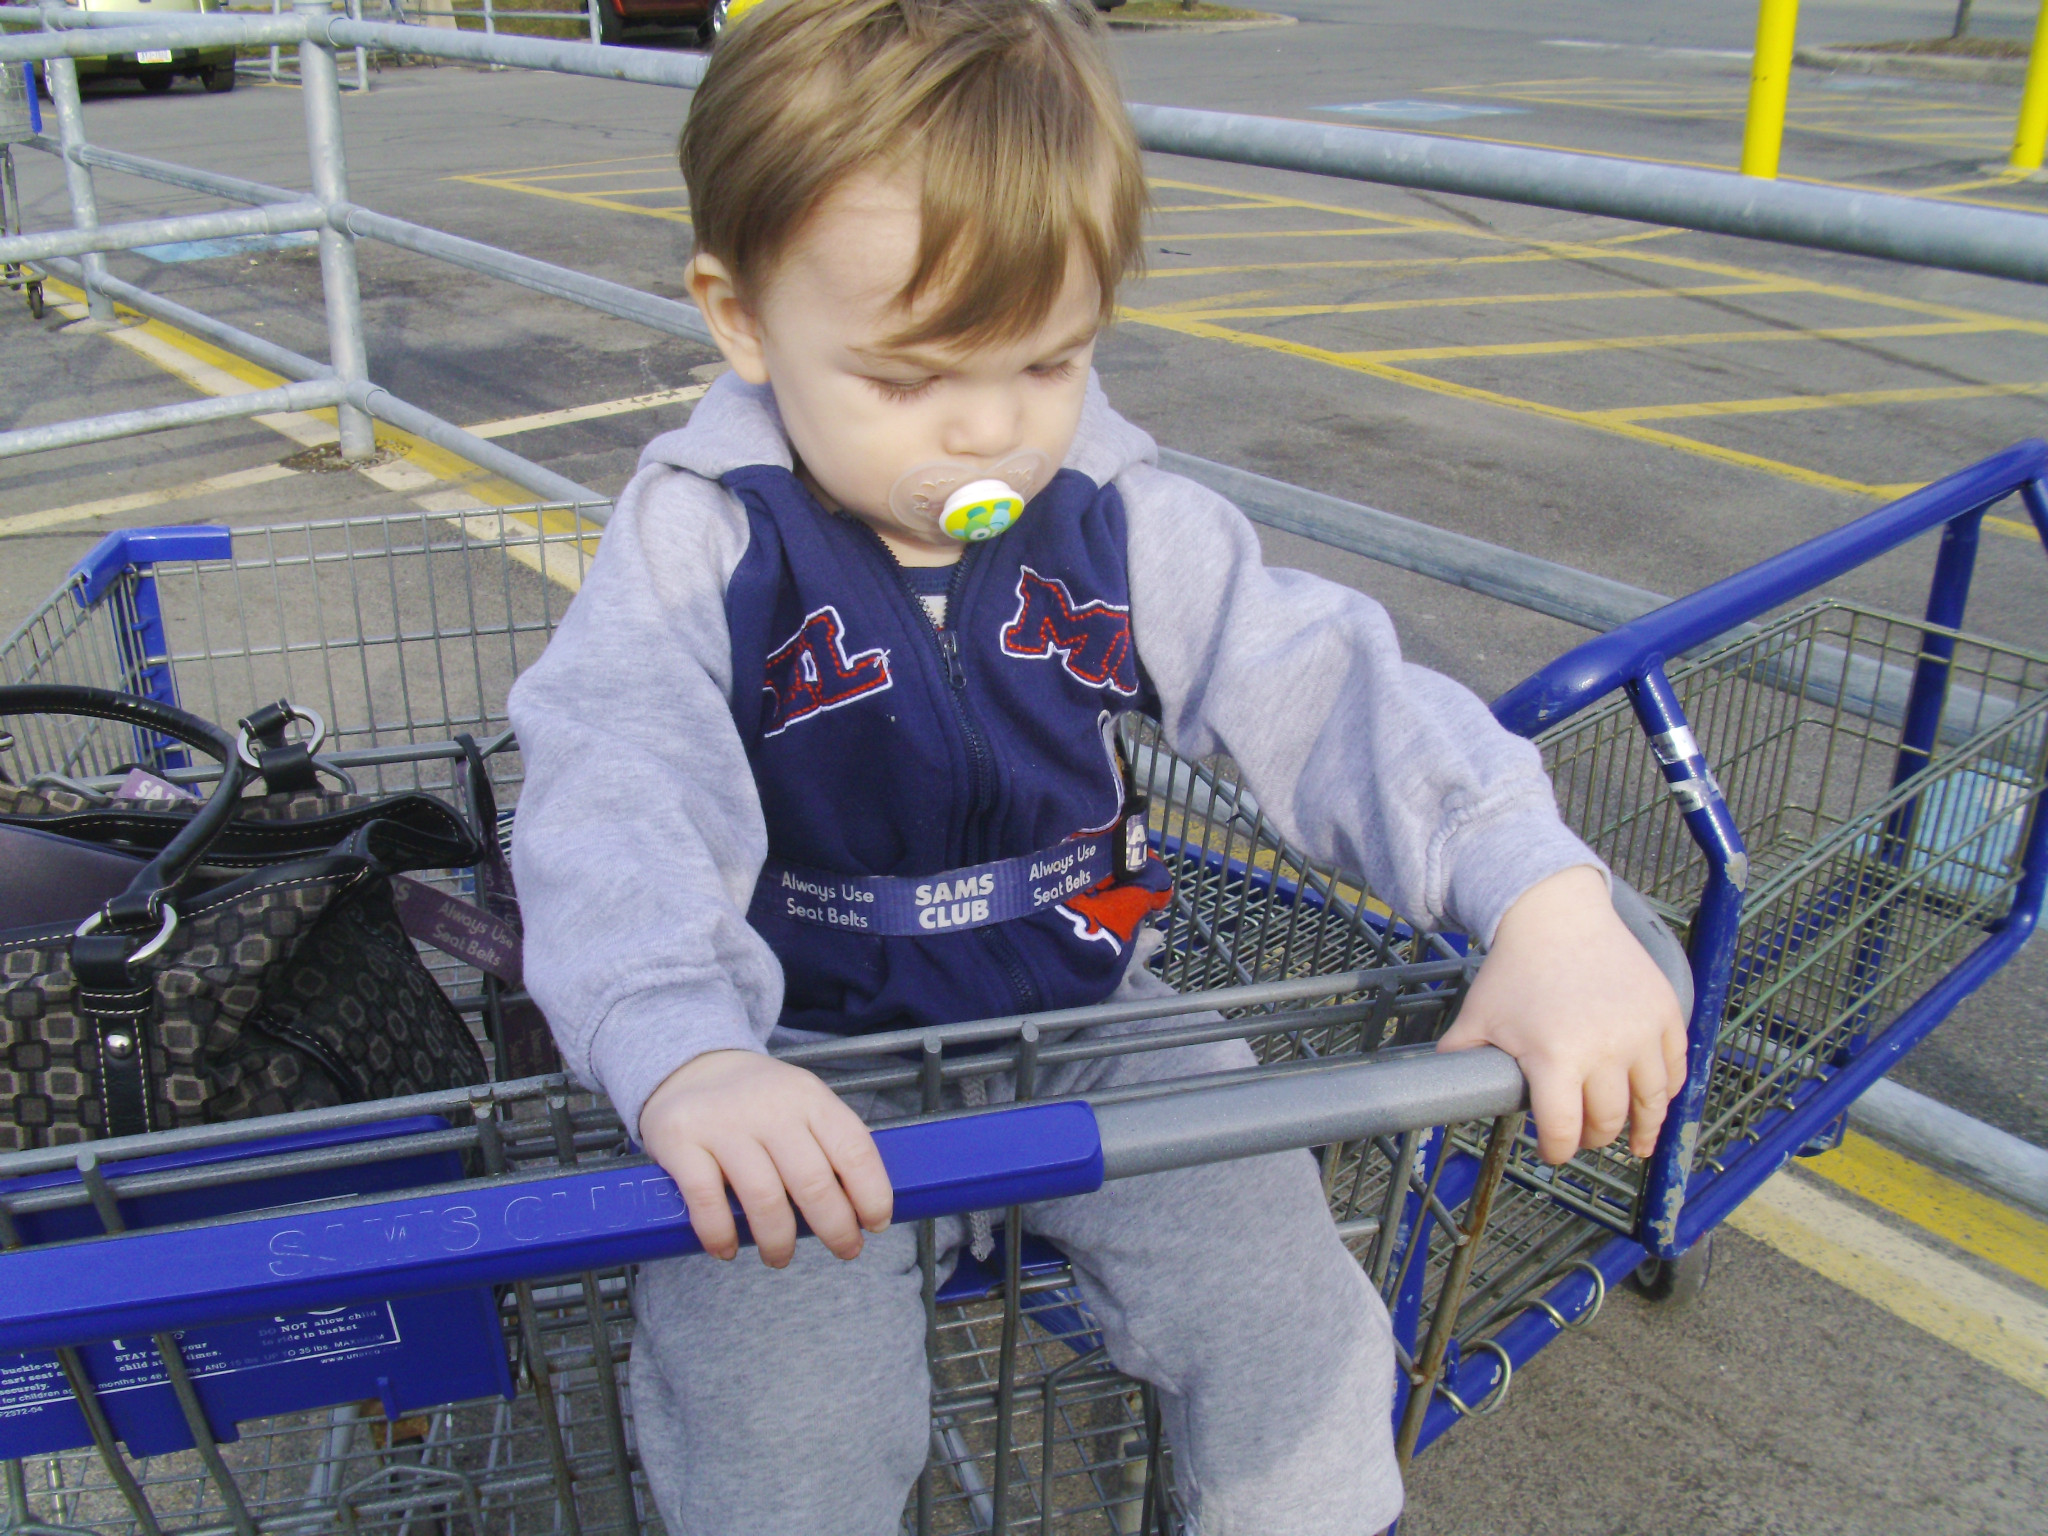 Photo: I was able to park right next to the cart return. It makes it a lot easier when I have my little one!